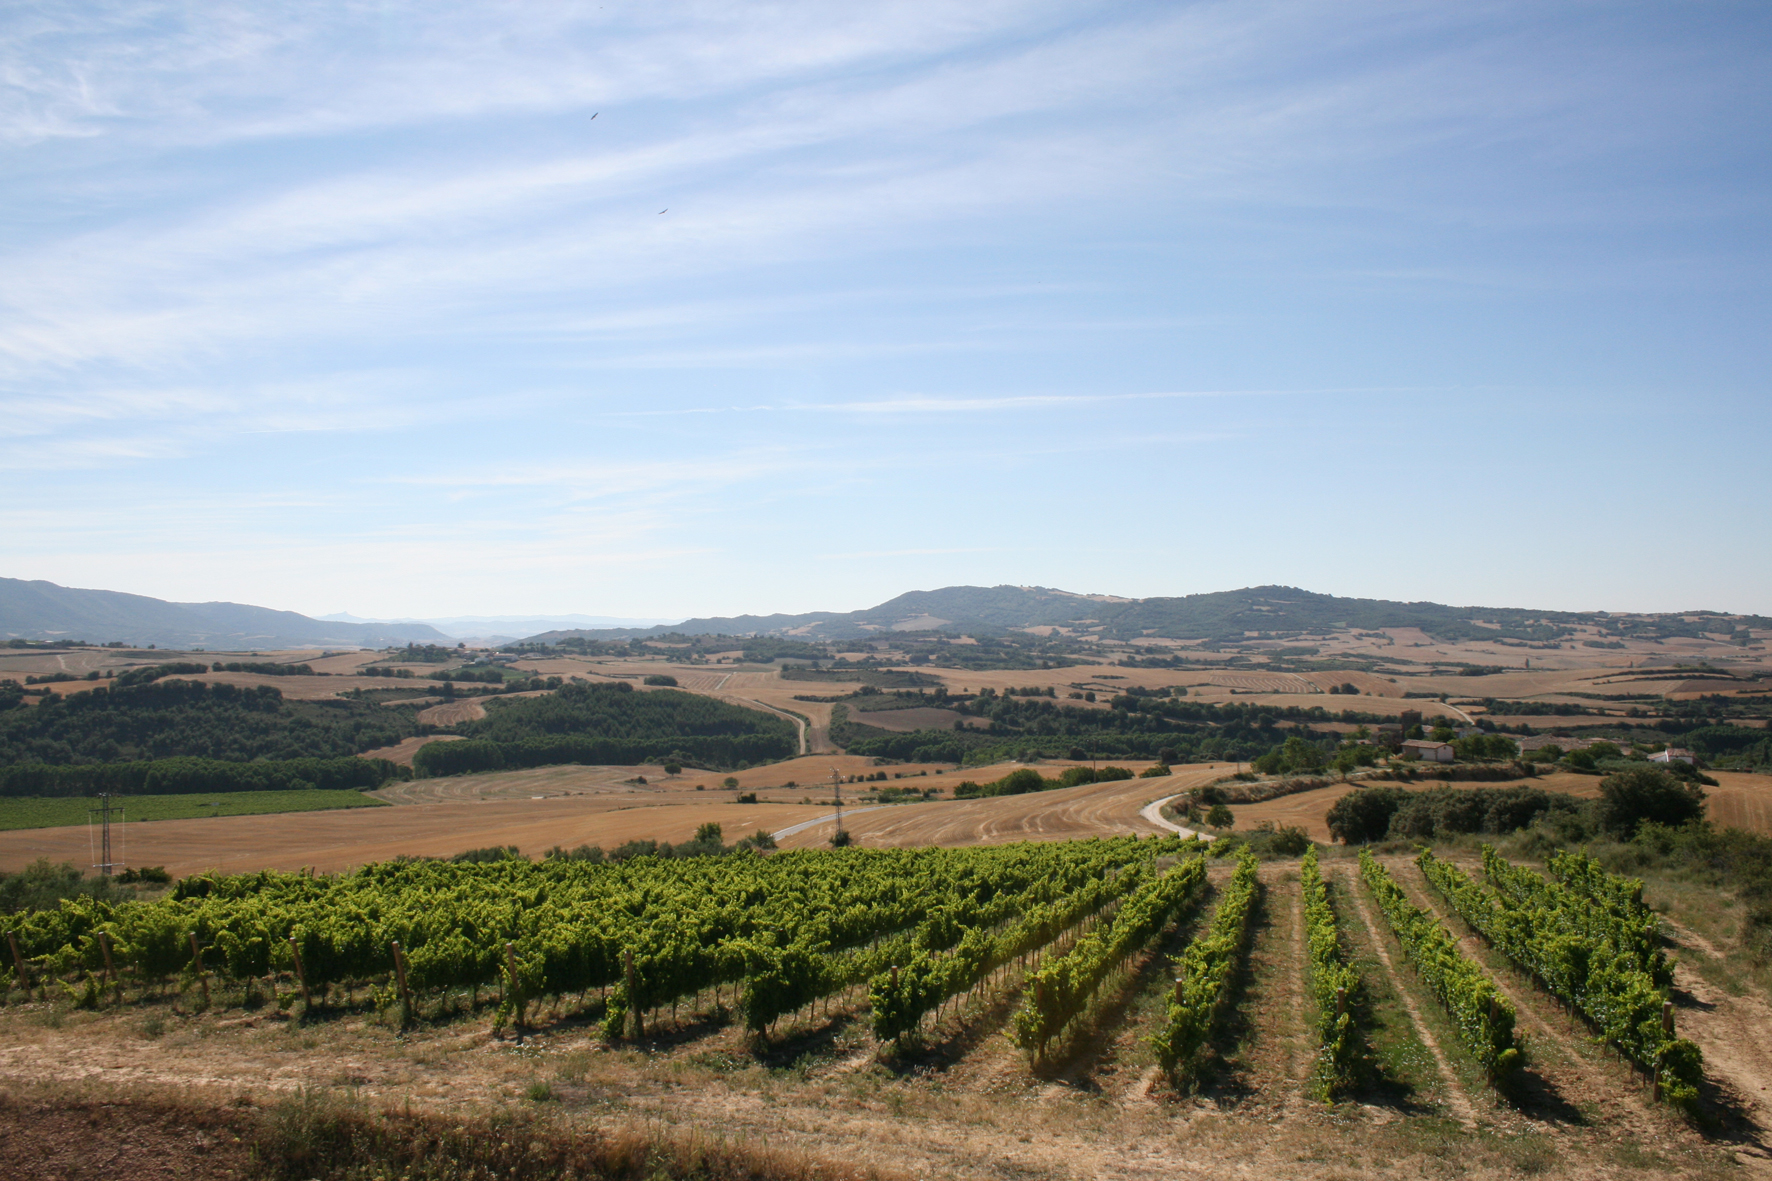 Bodegas Aroa is one of the winemakers in Navarra that is pushing innovation and a unique identity